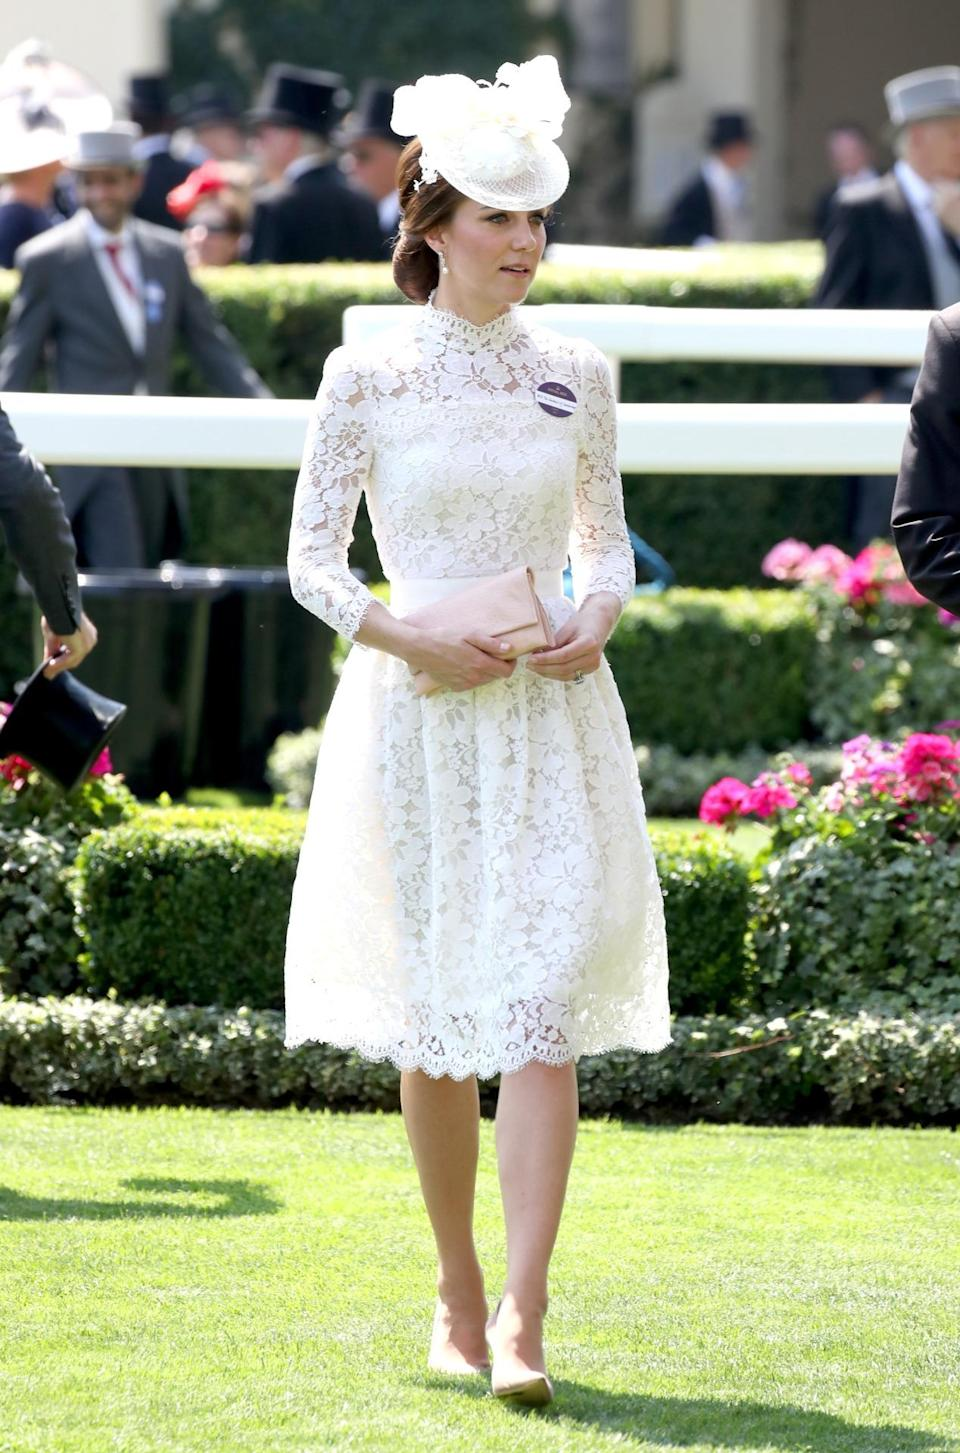 <p>Kate attended the first day of Royal Ascot 2017 wearing an eerily similar look to. her previous Ascot outfit. Instead of a white lacy Dolce & Gabbana dress, she chose a white lacy Alexander McQueen style with a matching hat and Gianvito Rossi heels. </p><p><i>[Photo: Getty]</i></p>